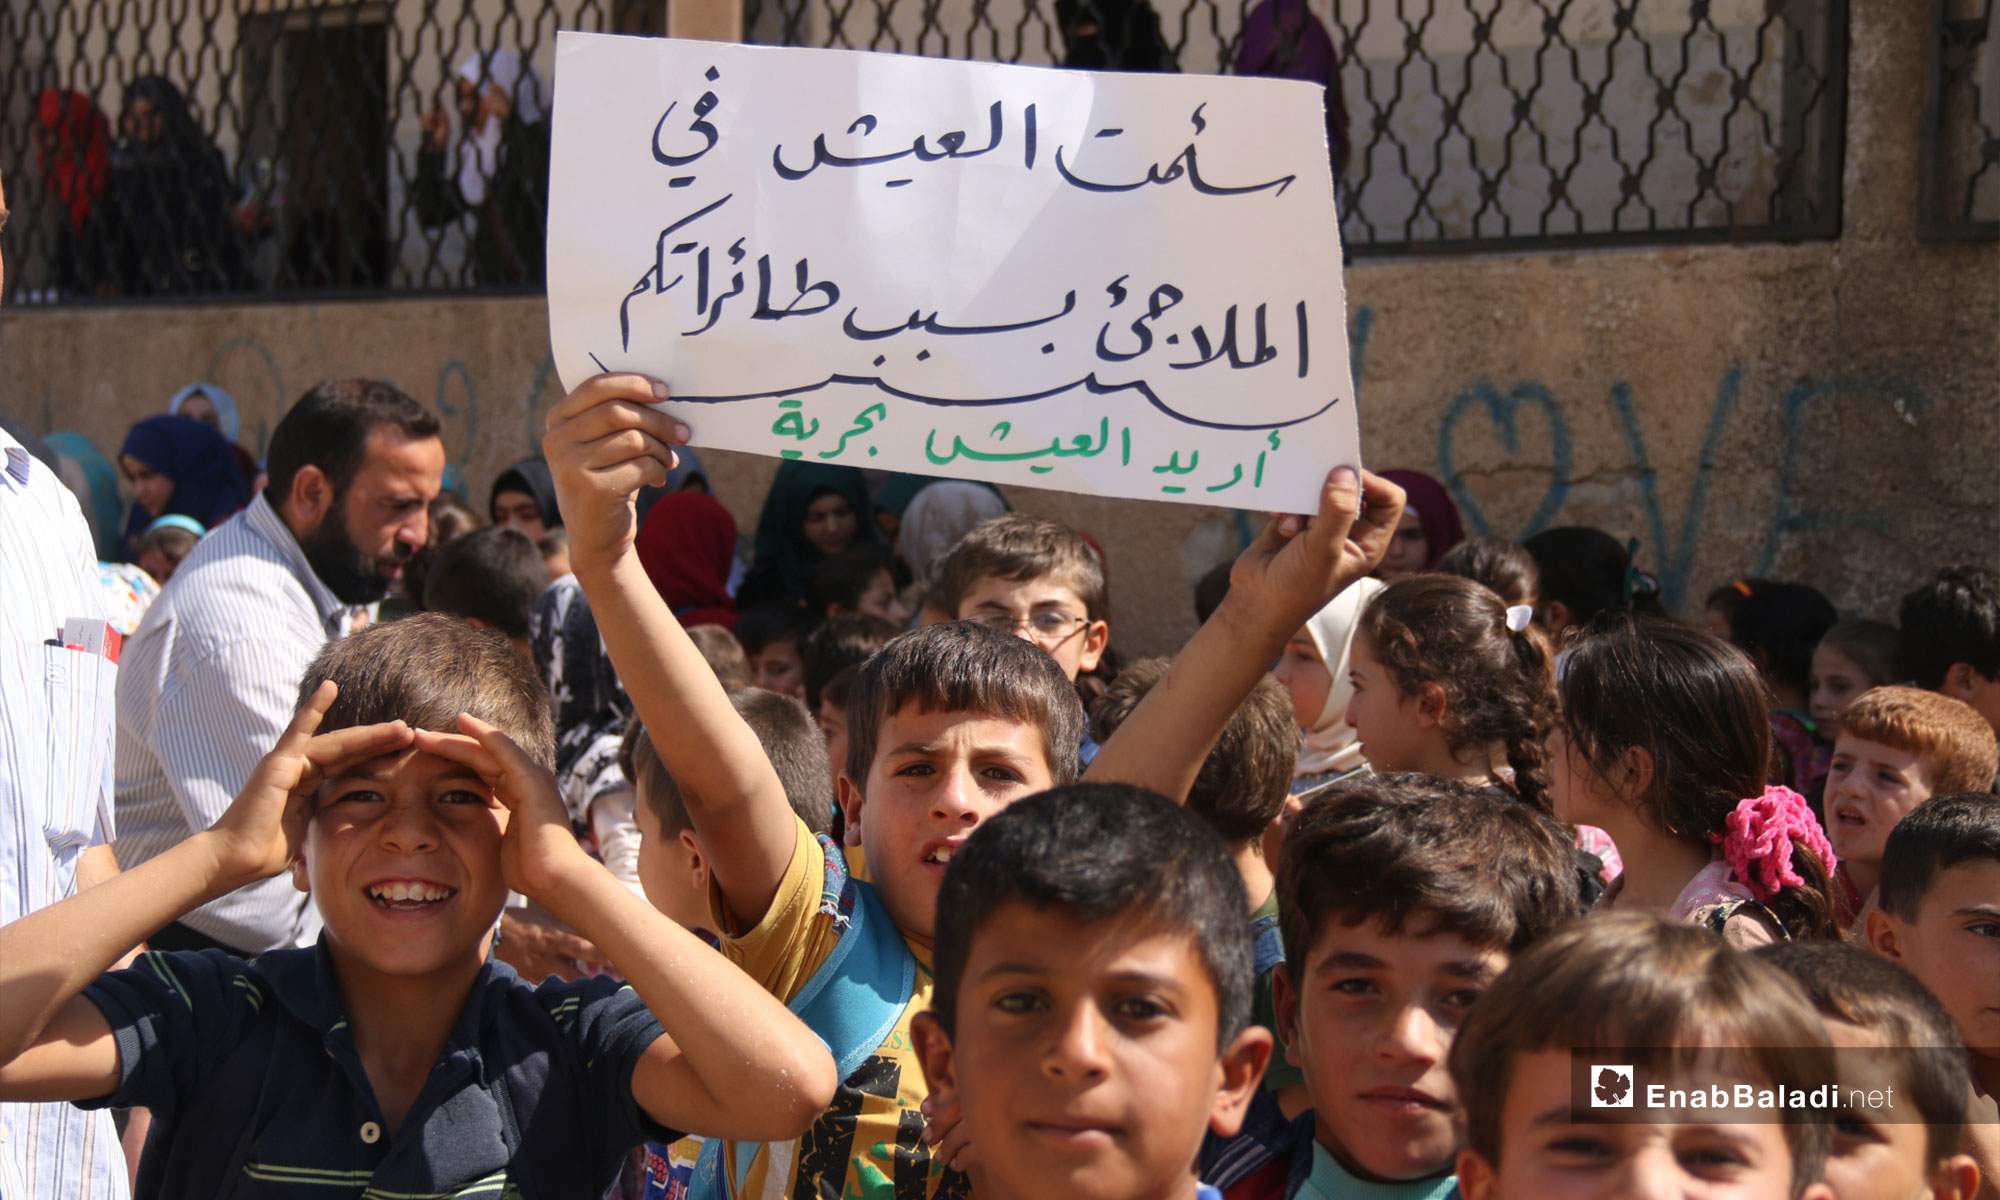 A protest organized by the educational staff of Kafr Oweid Town, rural Idlib, calling for the support of education in the liberated areas [I am fed up with living at shelters because of your aircraft; I want to live freely]- September 19, 2018 (Enab Baladi)